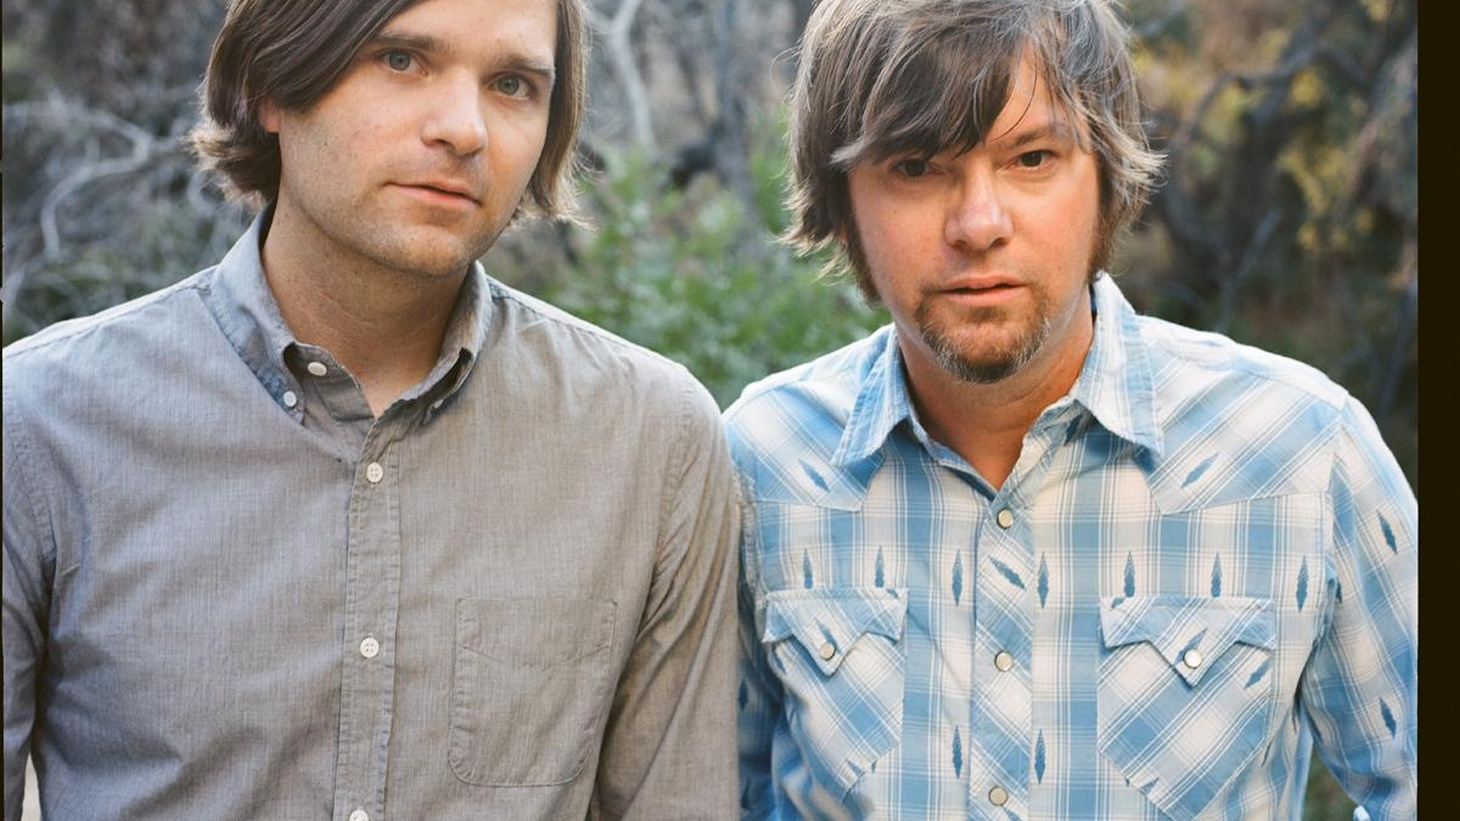 Jay Farrar of Son Volt and Ben Gibbard of Death Cab for Cutie seem like an unlikely pairing, but their shared appreciation for Beat writer Jack Keroauc lead them to write songs with lyrics taken from the 1962 novel, Big Sur. They'll share their music live on Morning Becomes Eclectic at 11:15am.